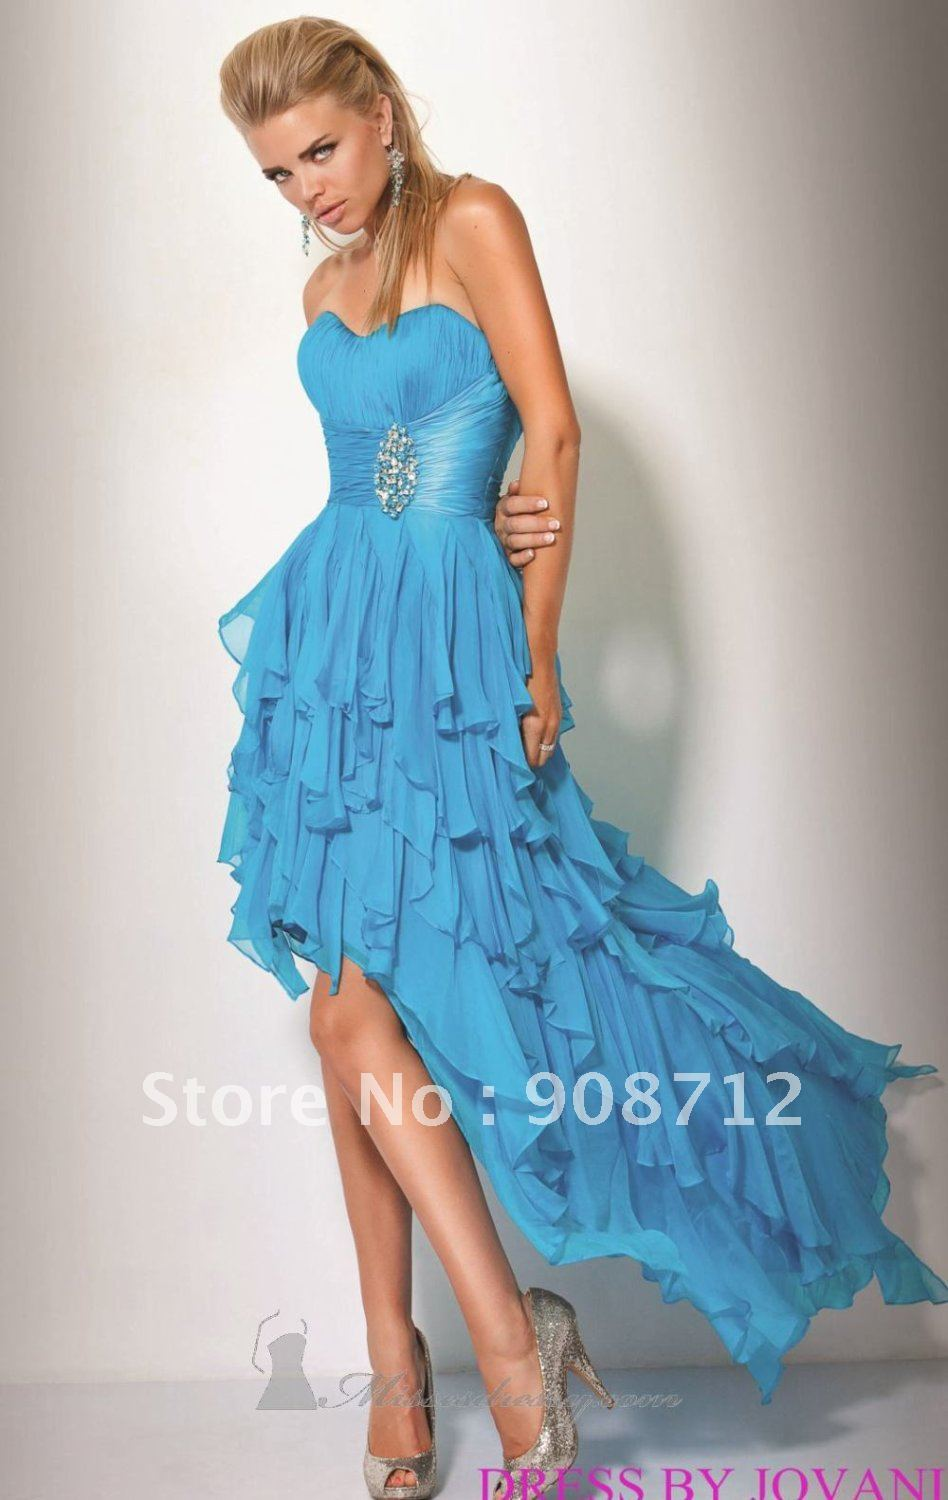 Funky Prom Dress Sell Vignette - Womens Dresses & Gowns Collections ...